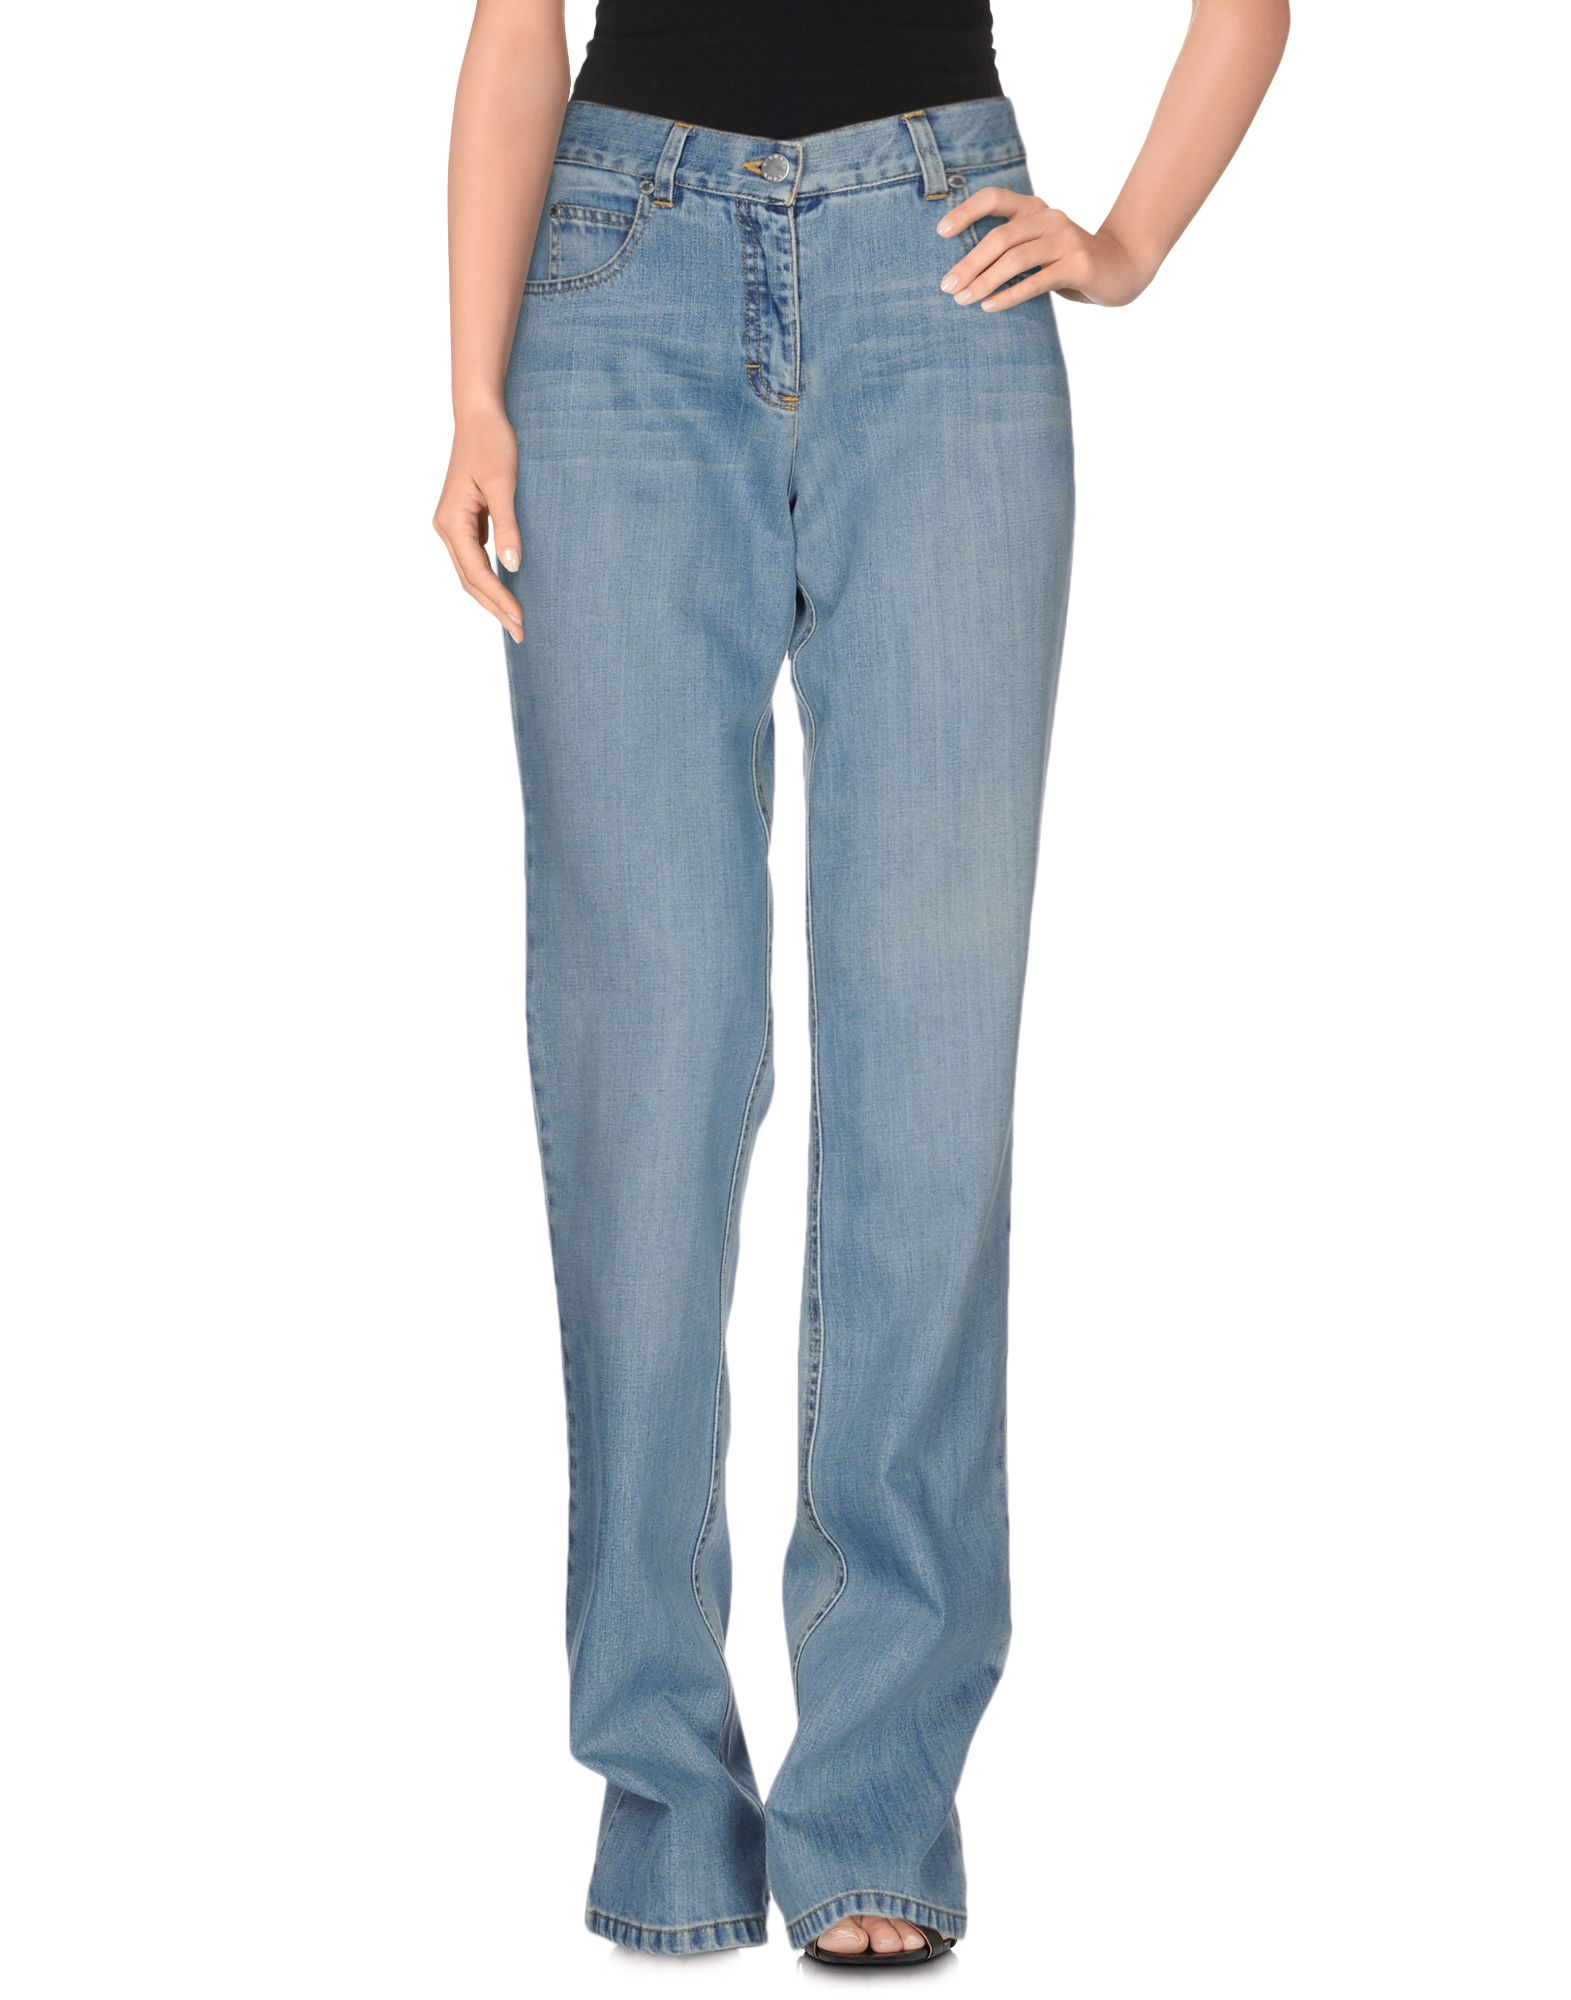 michael kors female michael kors jeans